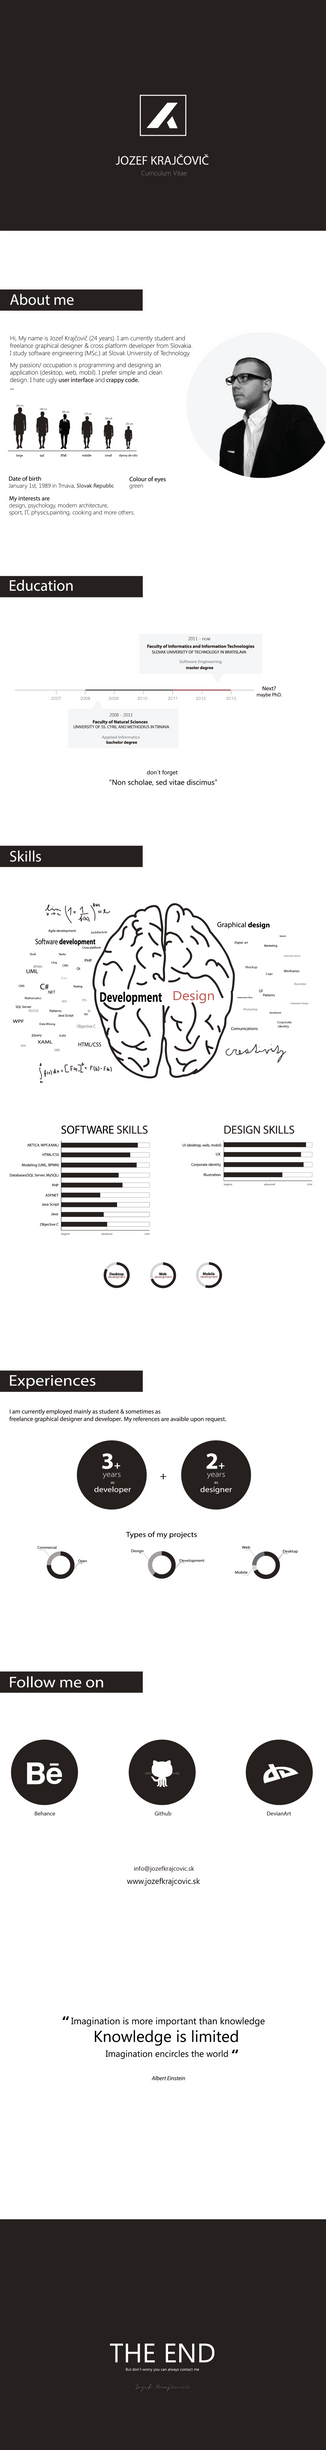 My curriculum vitae by jozef89